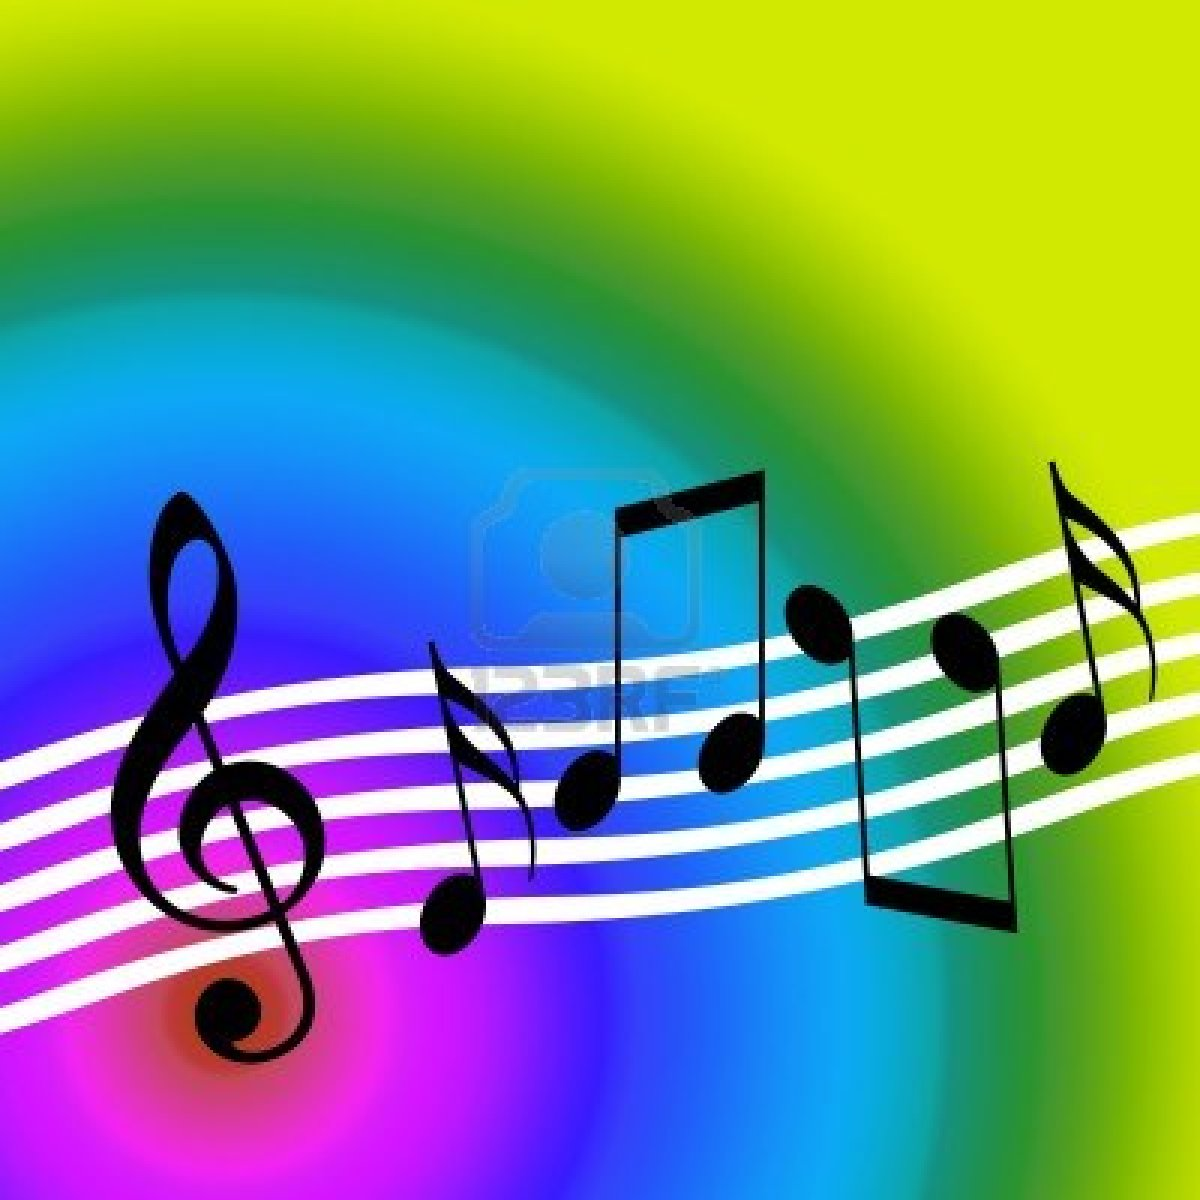 Colorful Music Notes Wallpaper Colorful Music Notes Symbols Funky